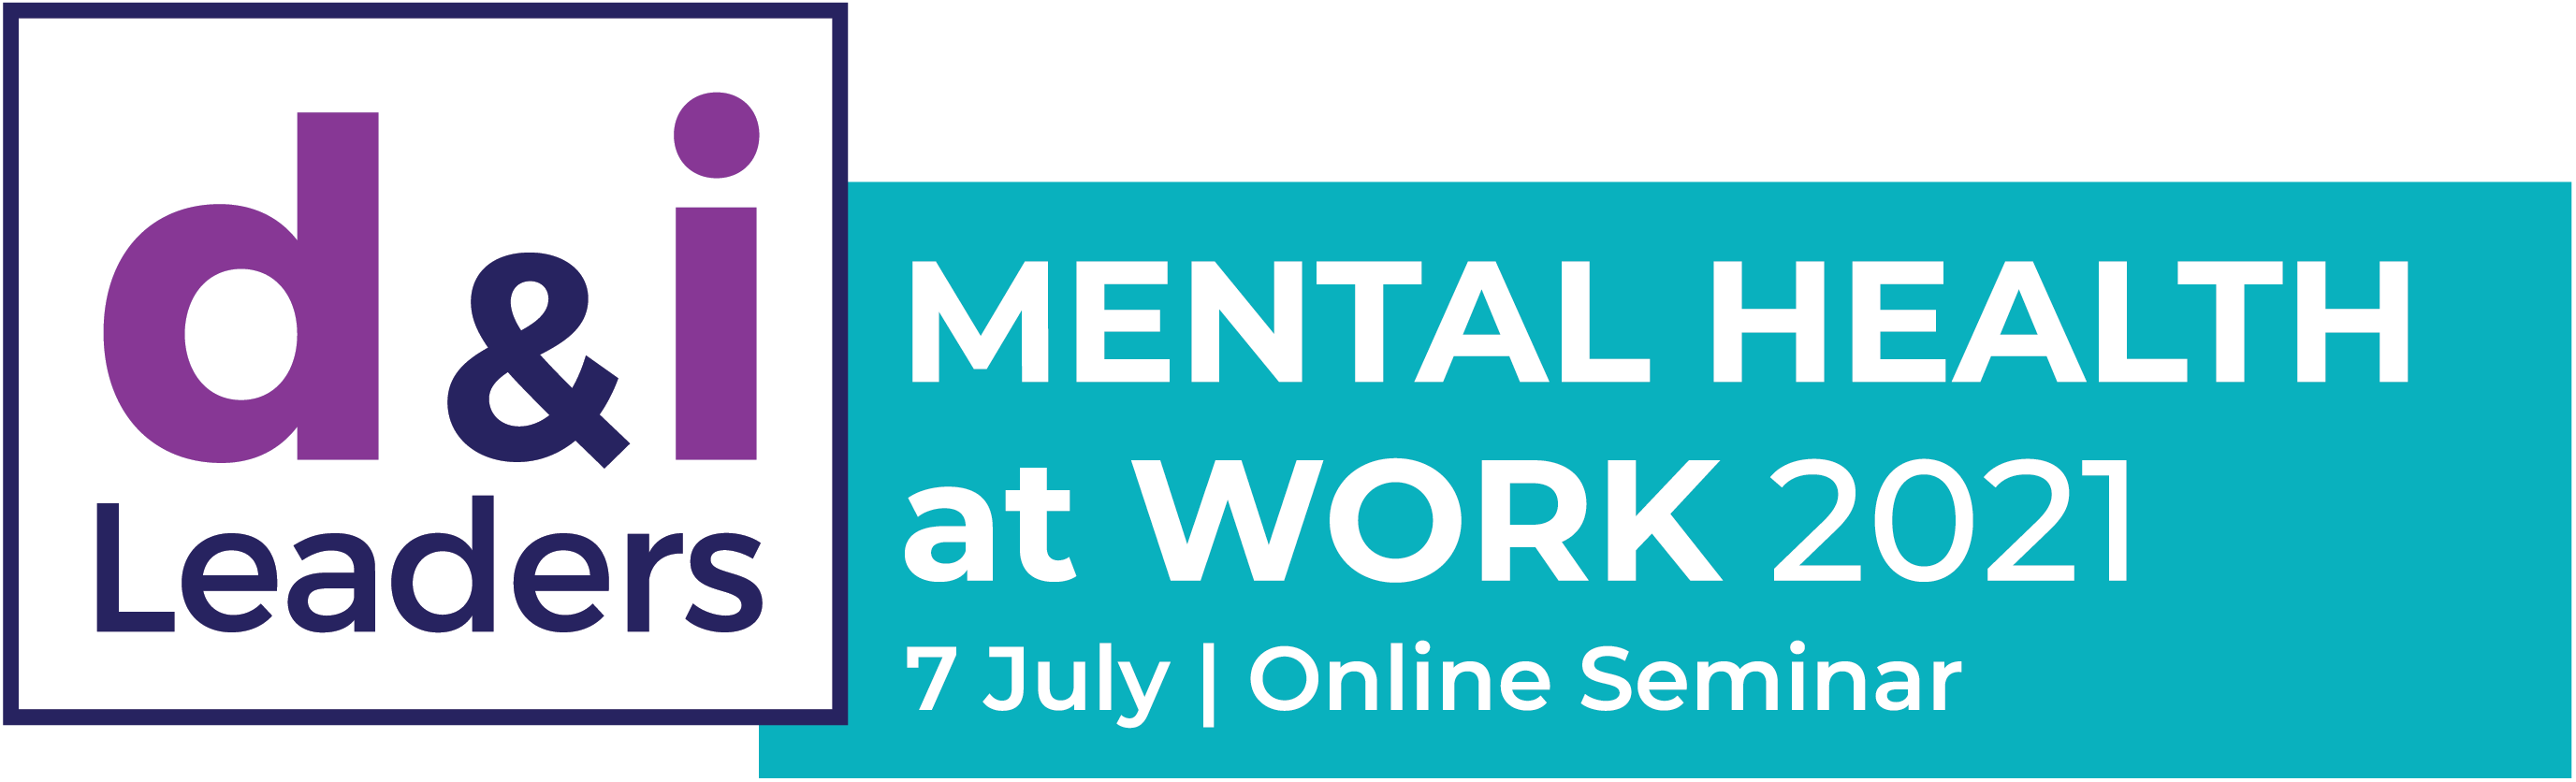 Diversity and Inclusion Leaders Mental Health at Work 2021